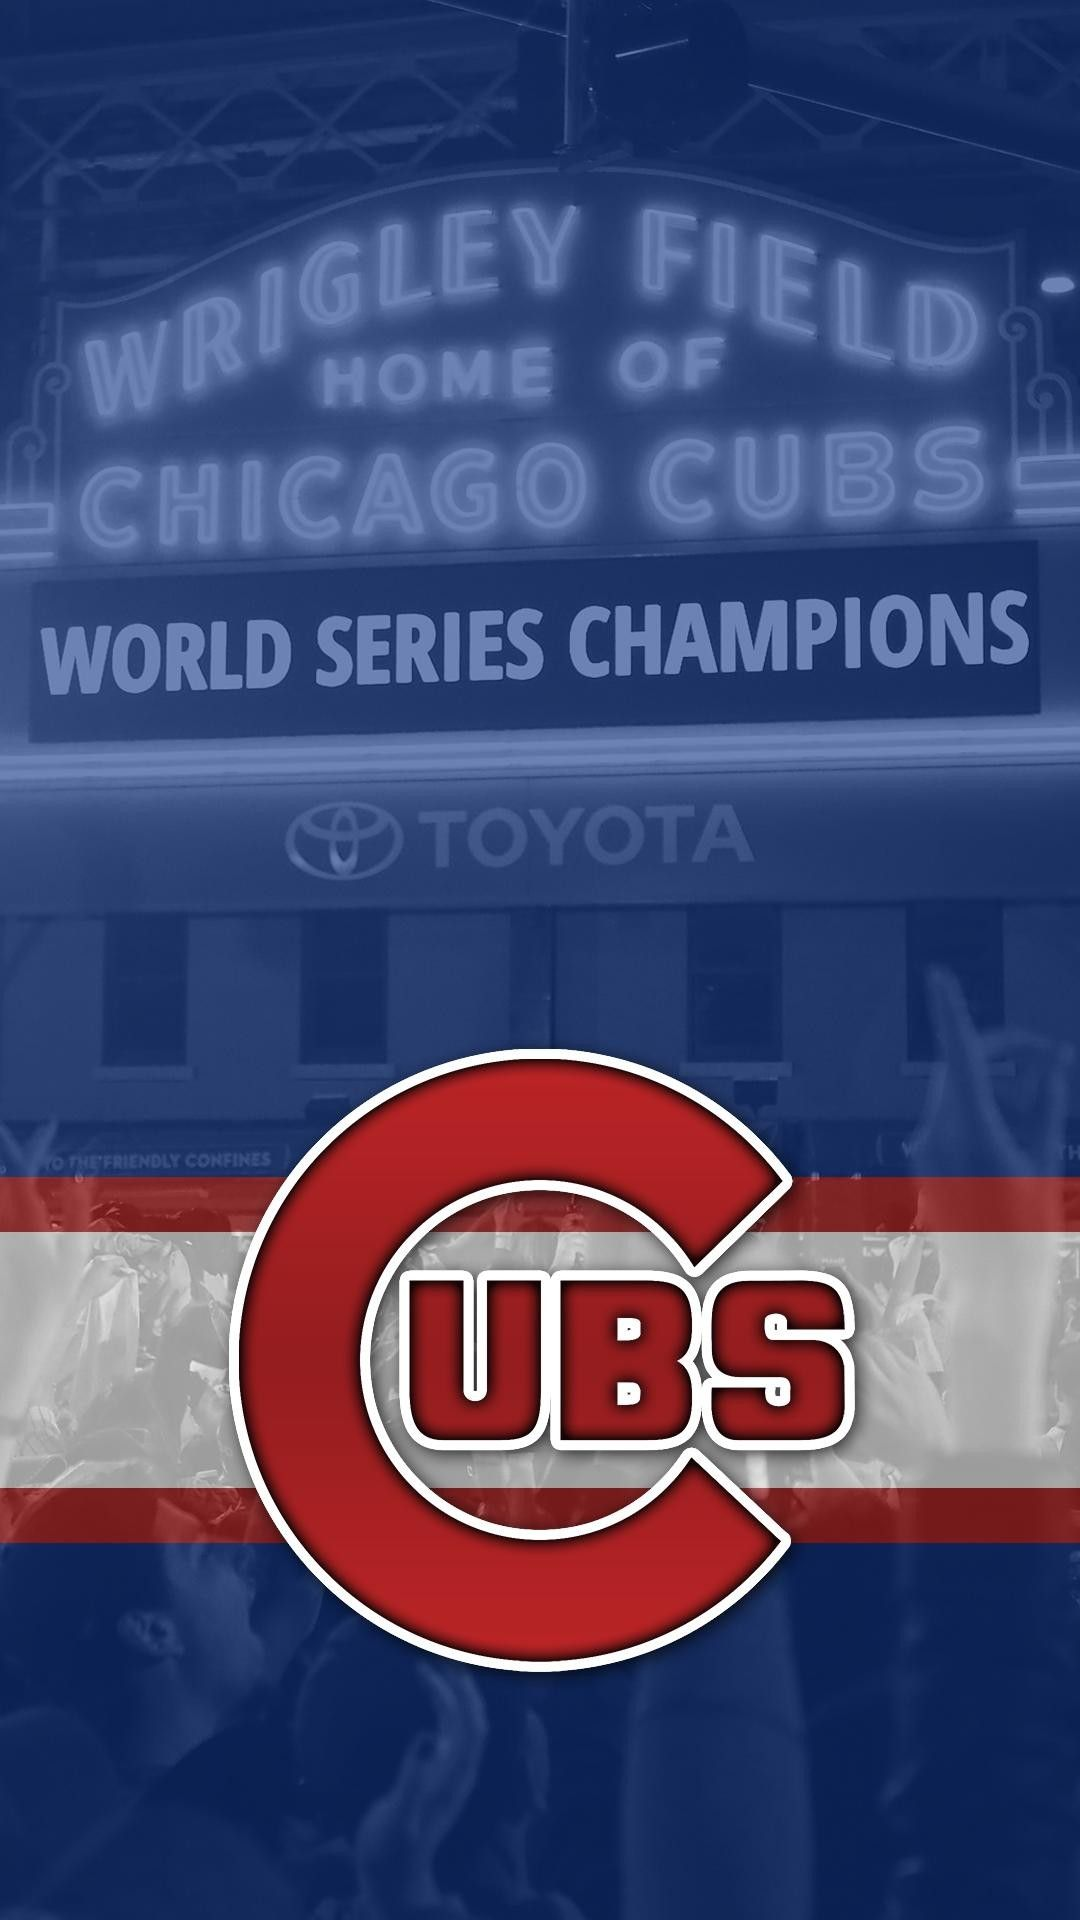 Pin on Chicago cubs wallpaper